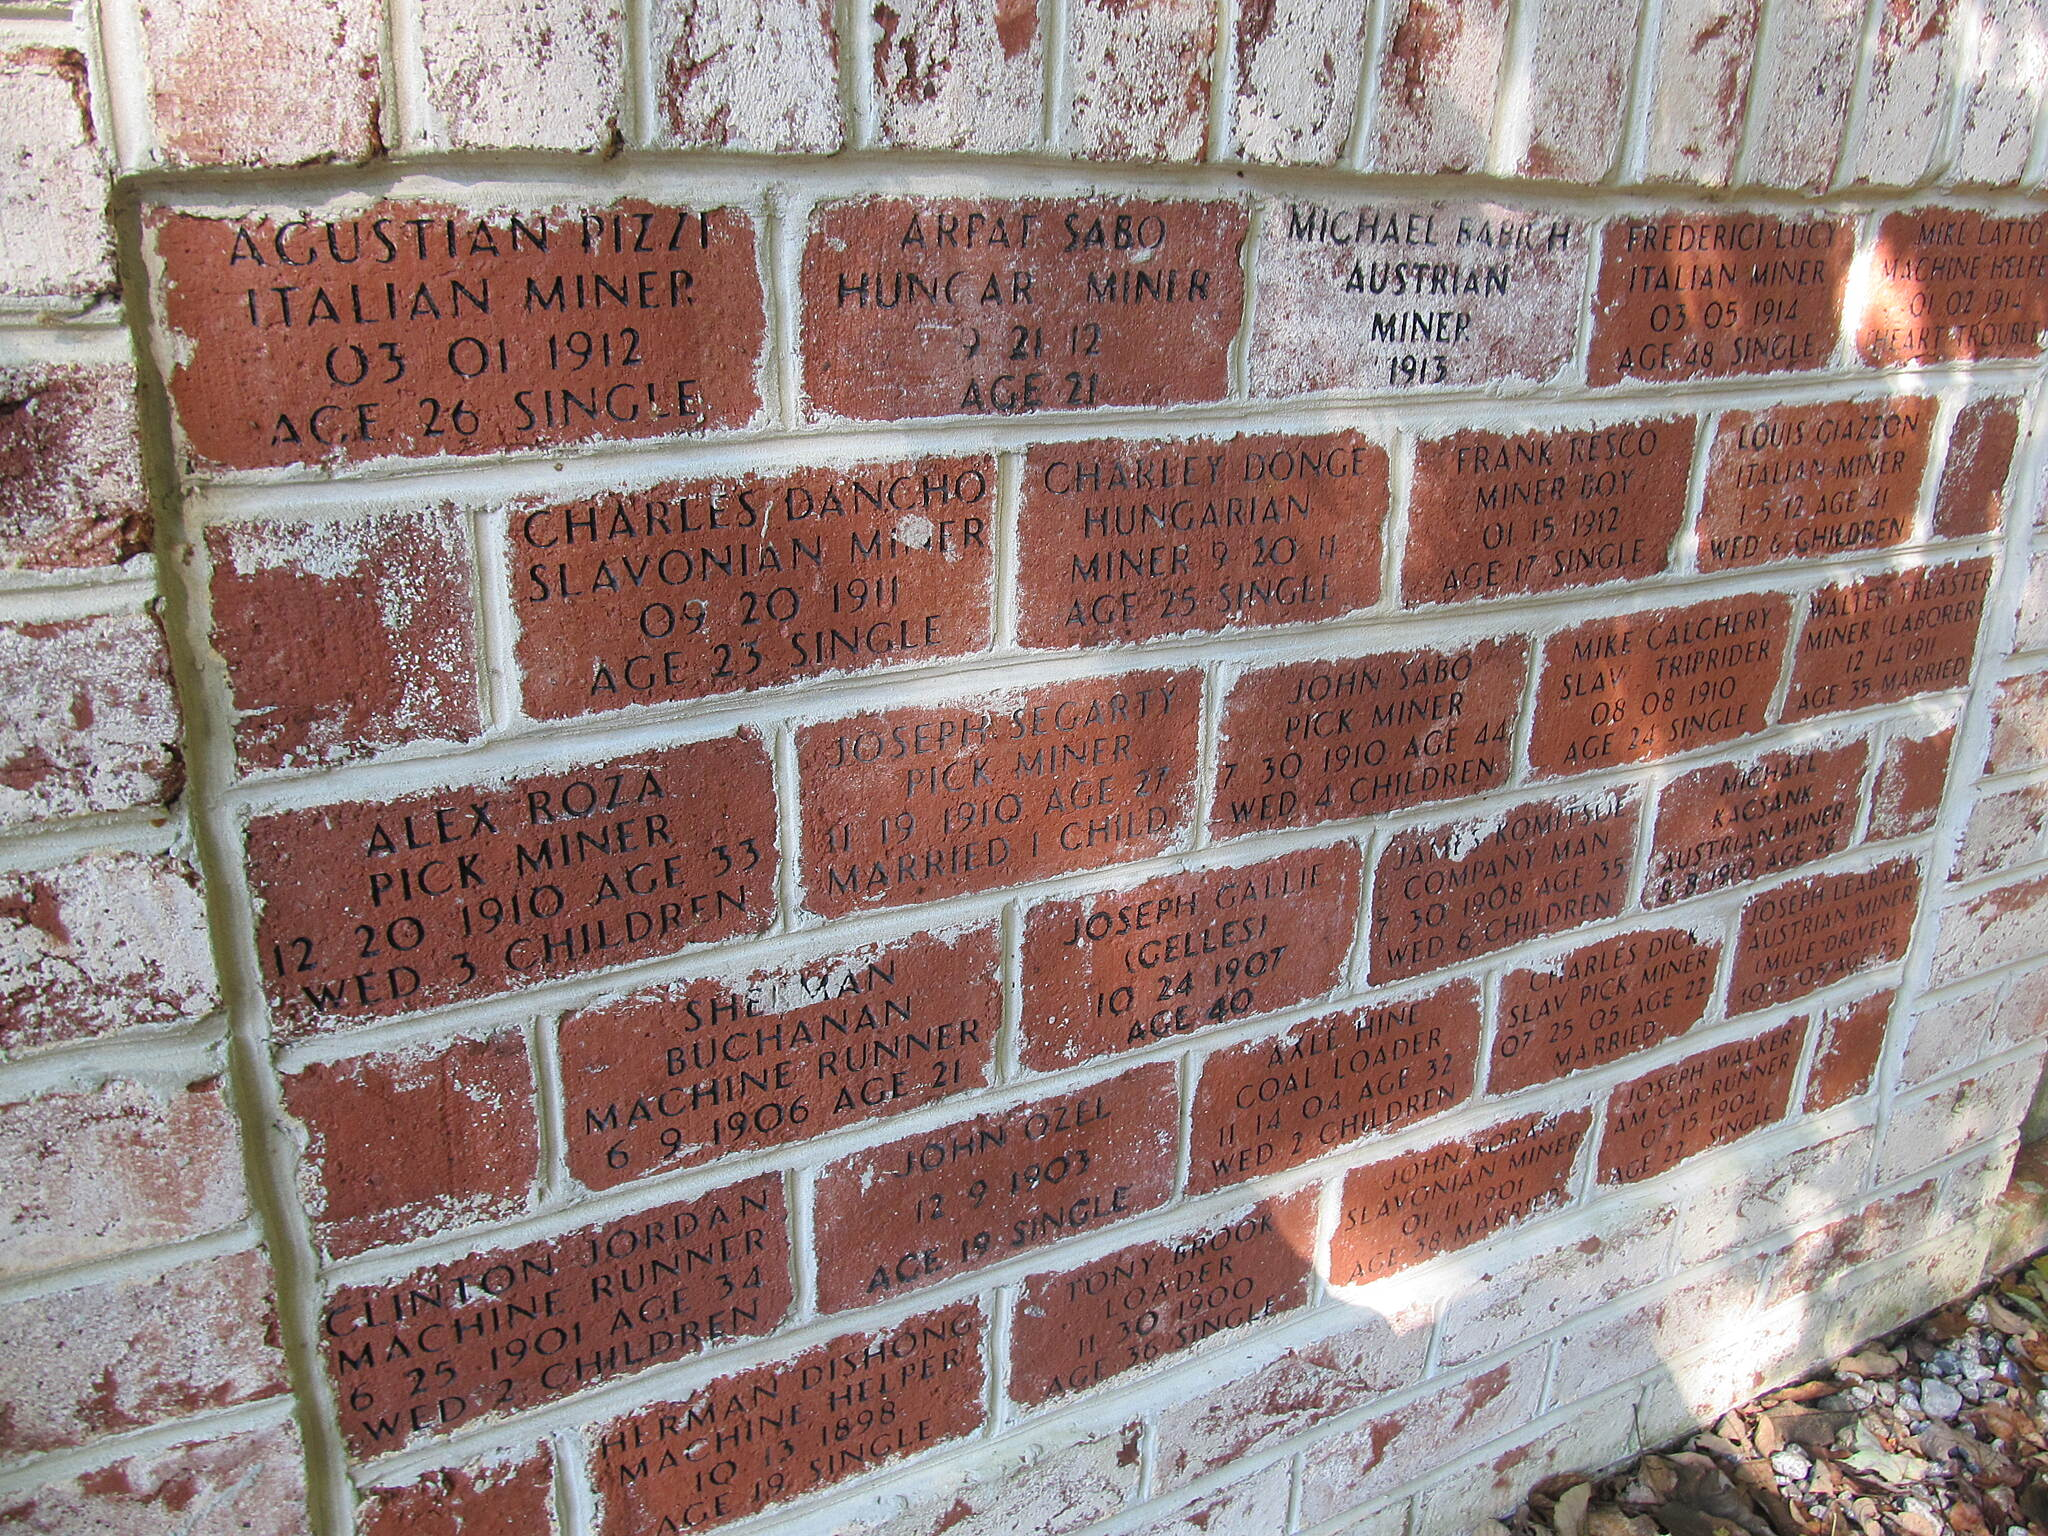 Ghost Town Trail Ghost Town Trl miners exhibit The bricks had names of miners that had died.  The exhibit was near Vintondale